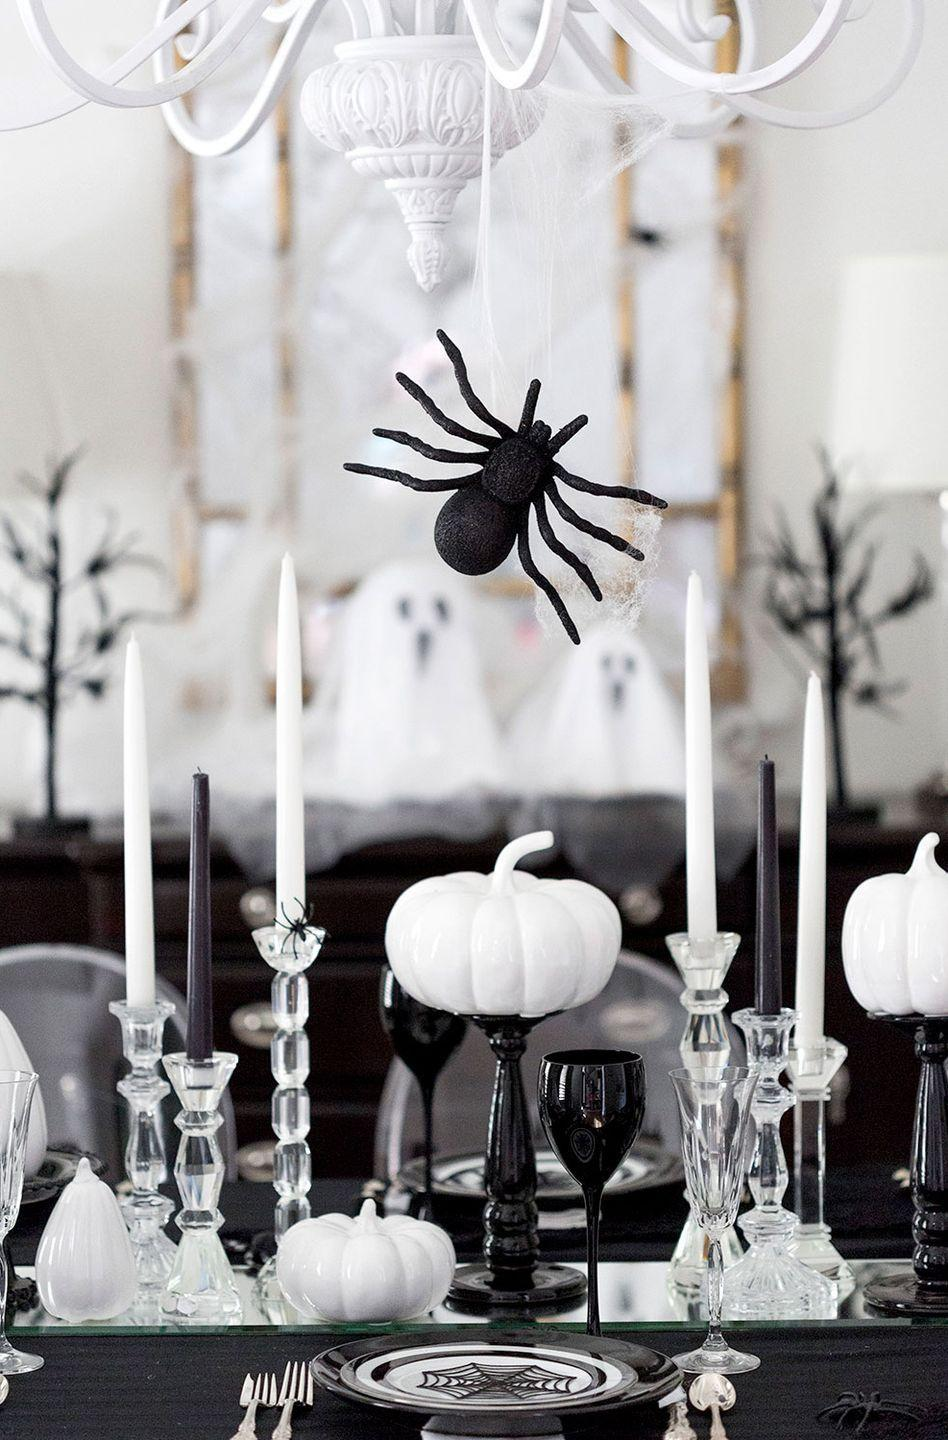 """<p>Black-and-white dinnerware, pumpkins, and candles create an elevated, but still spirited, display. </p><p><strong>Get the tutorial at <a href=""""https://pizzazzerie.com/featured/host-a-spooktacular-halloween-dinner-party/"""" rel=""""nofollow noopener"""" target=""""_blank"""" data-ylk=""""slk:Pizzazzerie"""" class=""""link rapid-noclick-resp"""">Pizzazzerie</a>.</strong></p><p><a class=""""link rapid-noclick-resp"""" href=""""https://www.amazon.com/Factory-Direct-Craft-Artificial-Thanksgiving/dp/B01KGCGQA4/?tag=syn-yahoo-20&ascsubtag=%5Bartid%7C10050.g.3739%5Bsrc%7Cyahoo-us"""" rel=""""nofollow noopener"""" target=""""_blank"""" data-ylk=""""slk:SHOP FAUX WHITE PUMPKINS"""">SHOP FAUX WHITE PUMPKINS</a> </p>"""